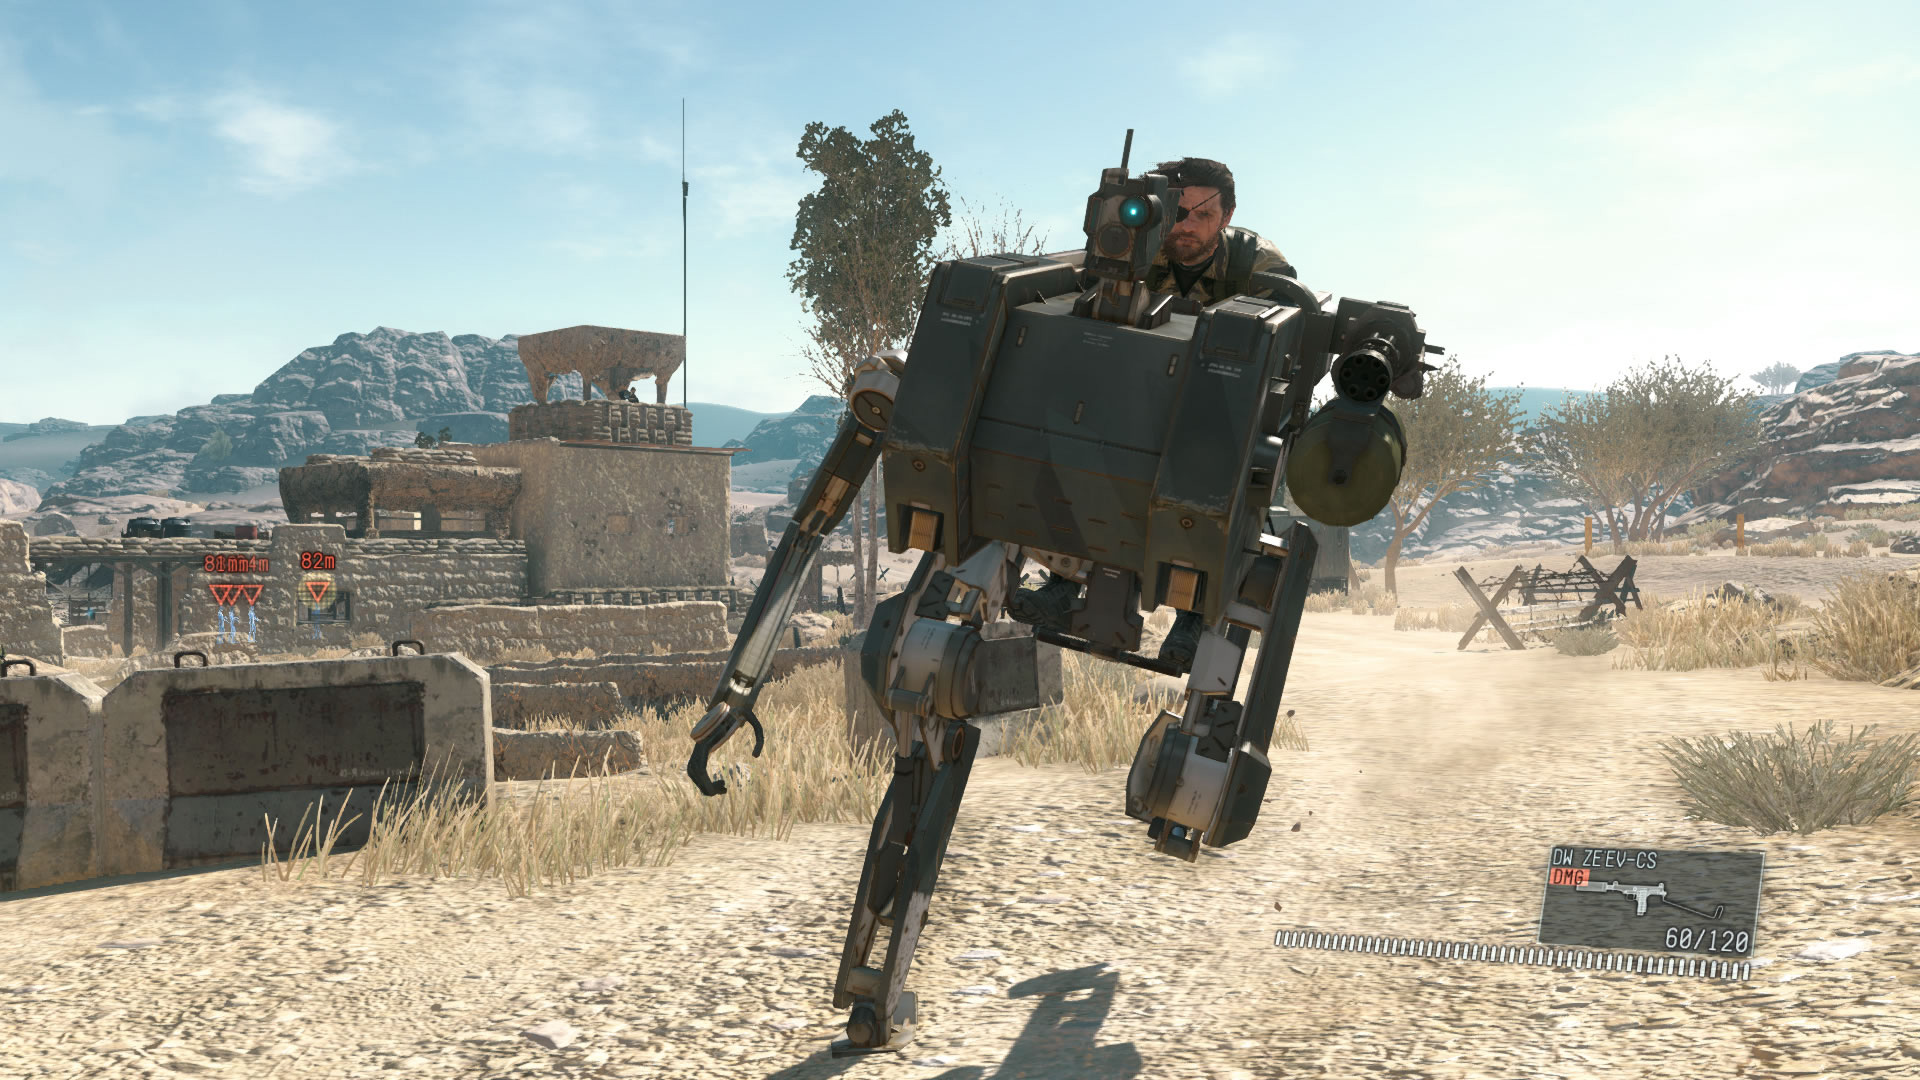 Metal-Gear-Solid-V-The-Phantom-Pain-E3-2015-Screen-Big-Boss-D-Walker